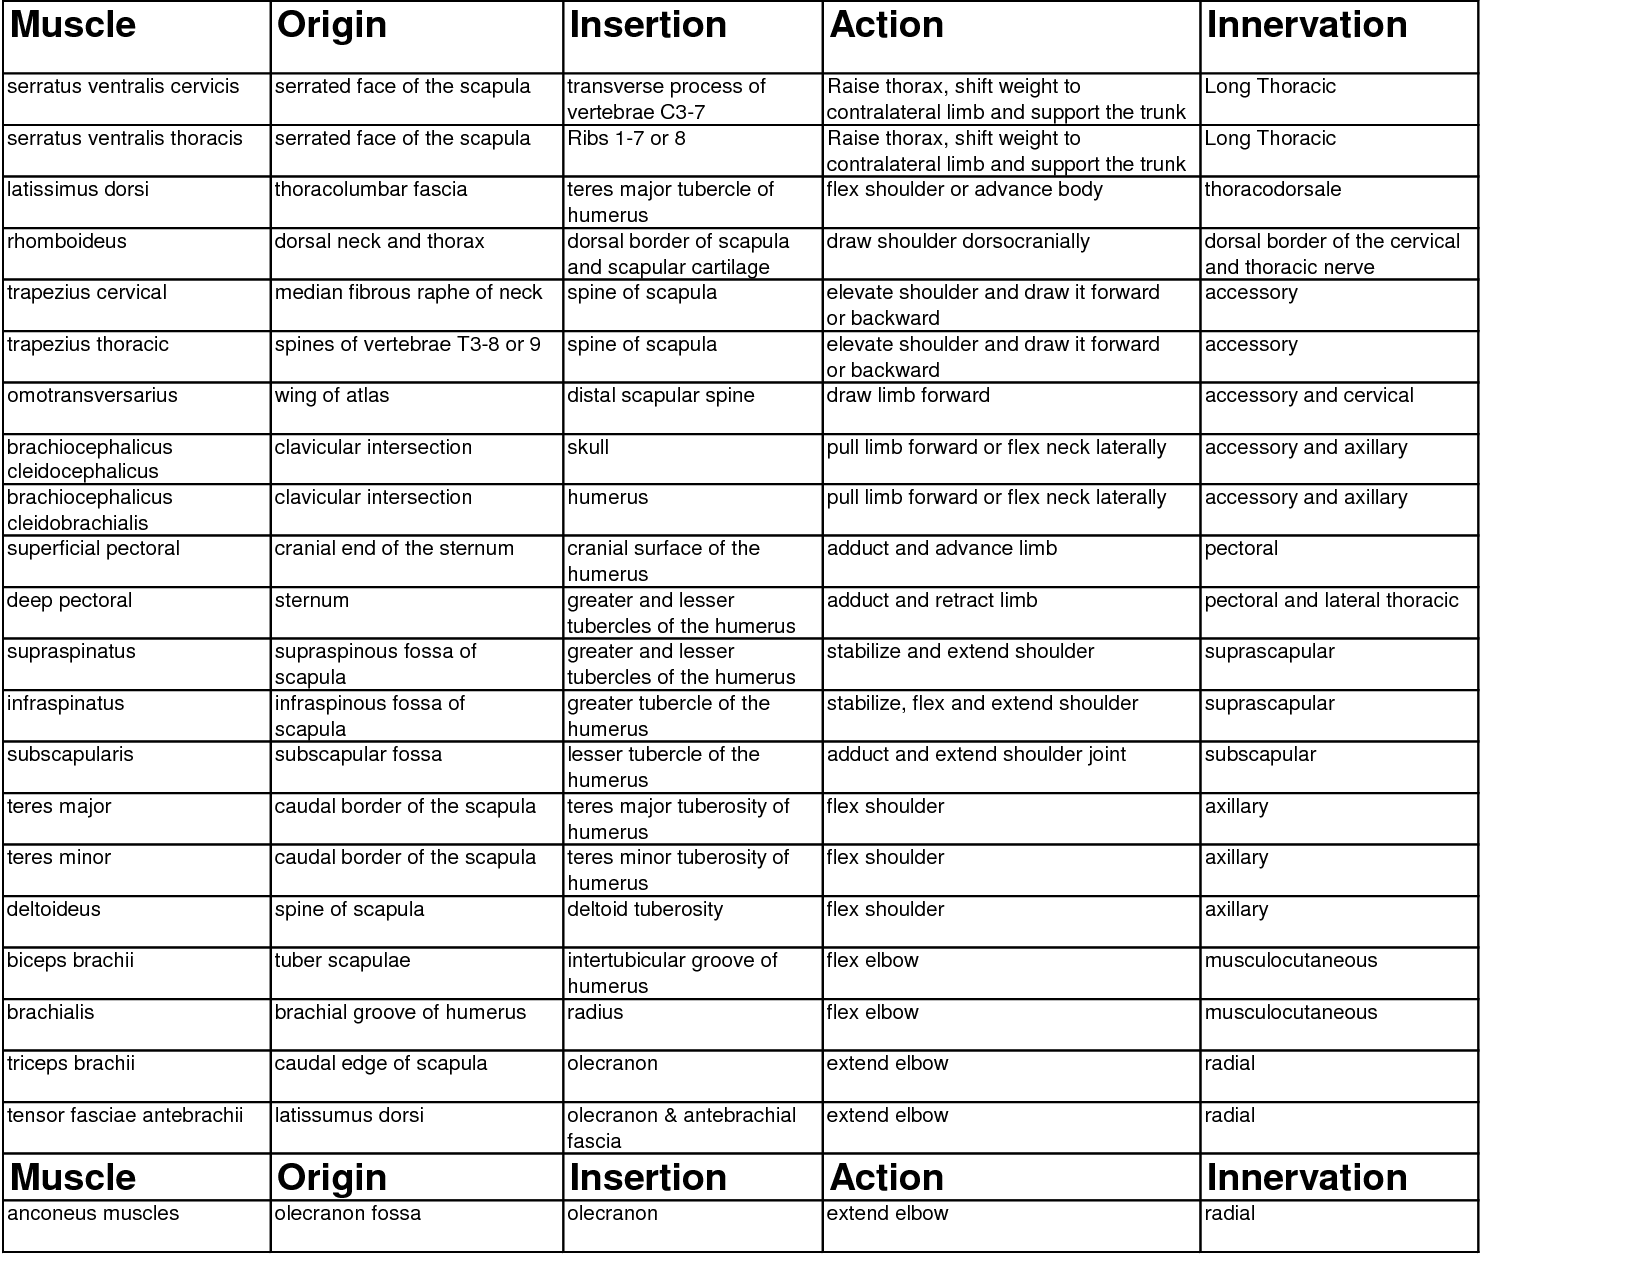 Muscle Origin Insertion Action Chart